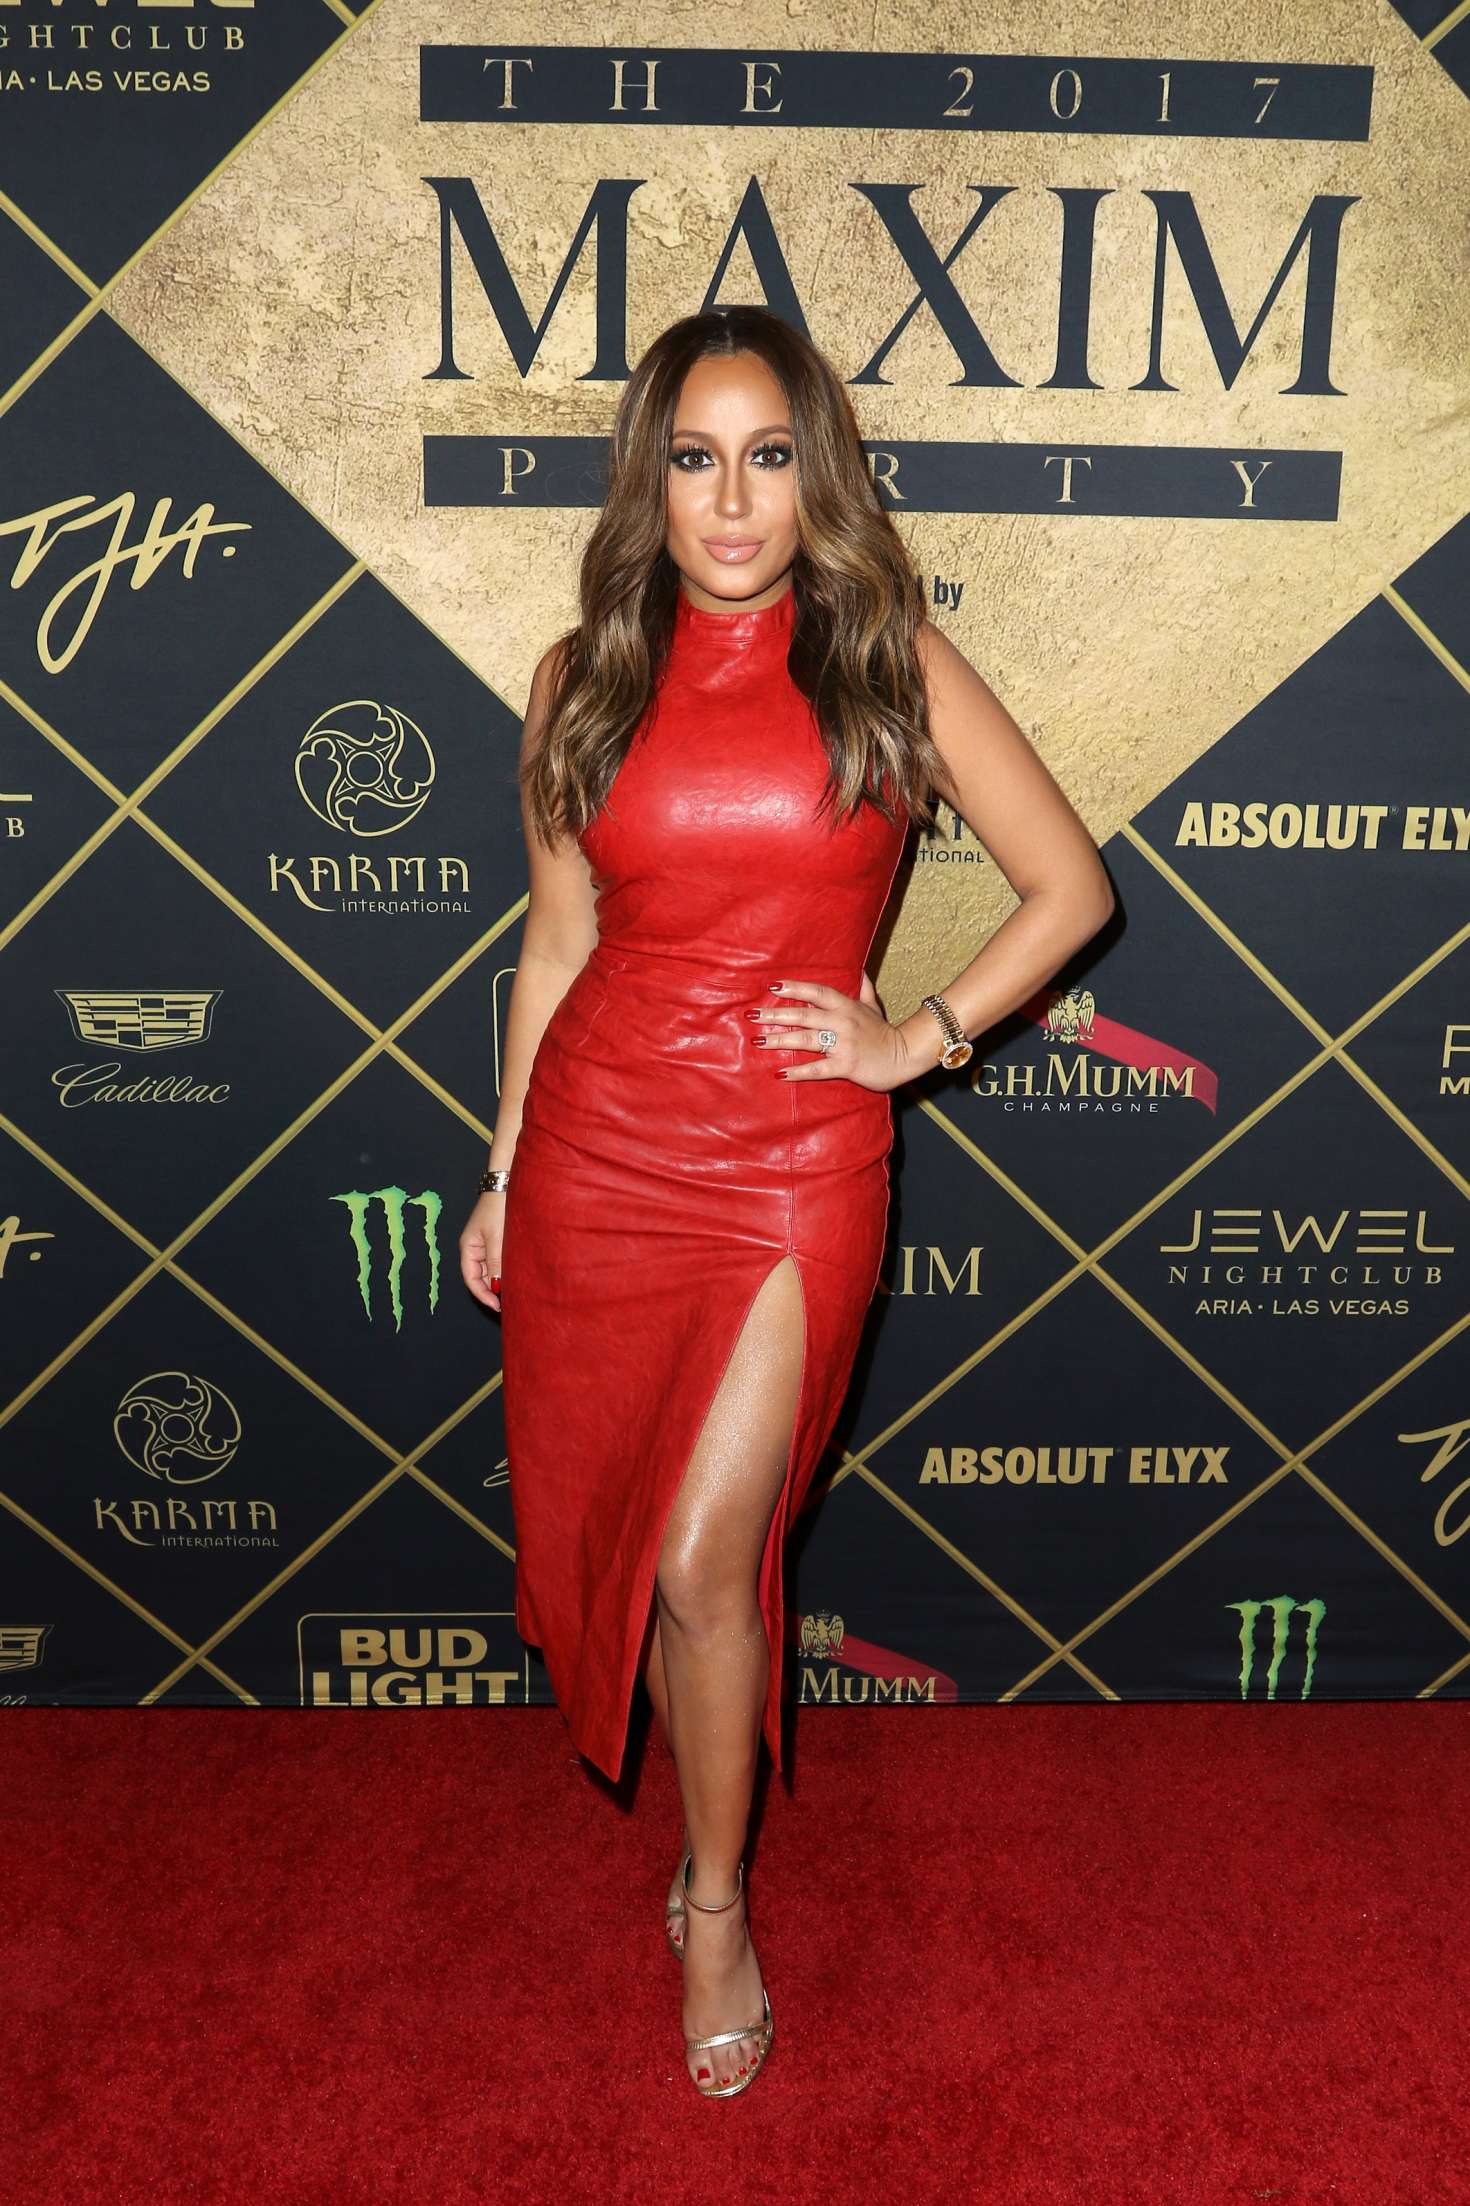 Adrienne Bailon - Maxim Super Bowl Party in Houston